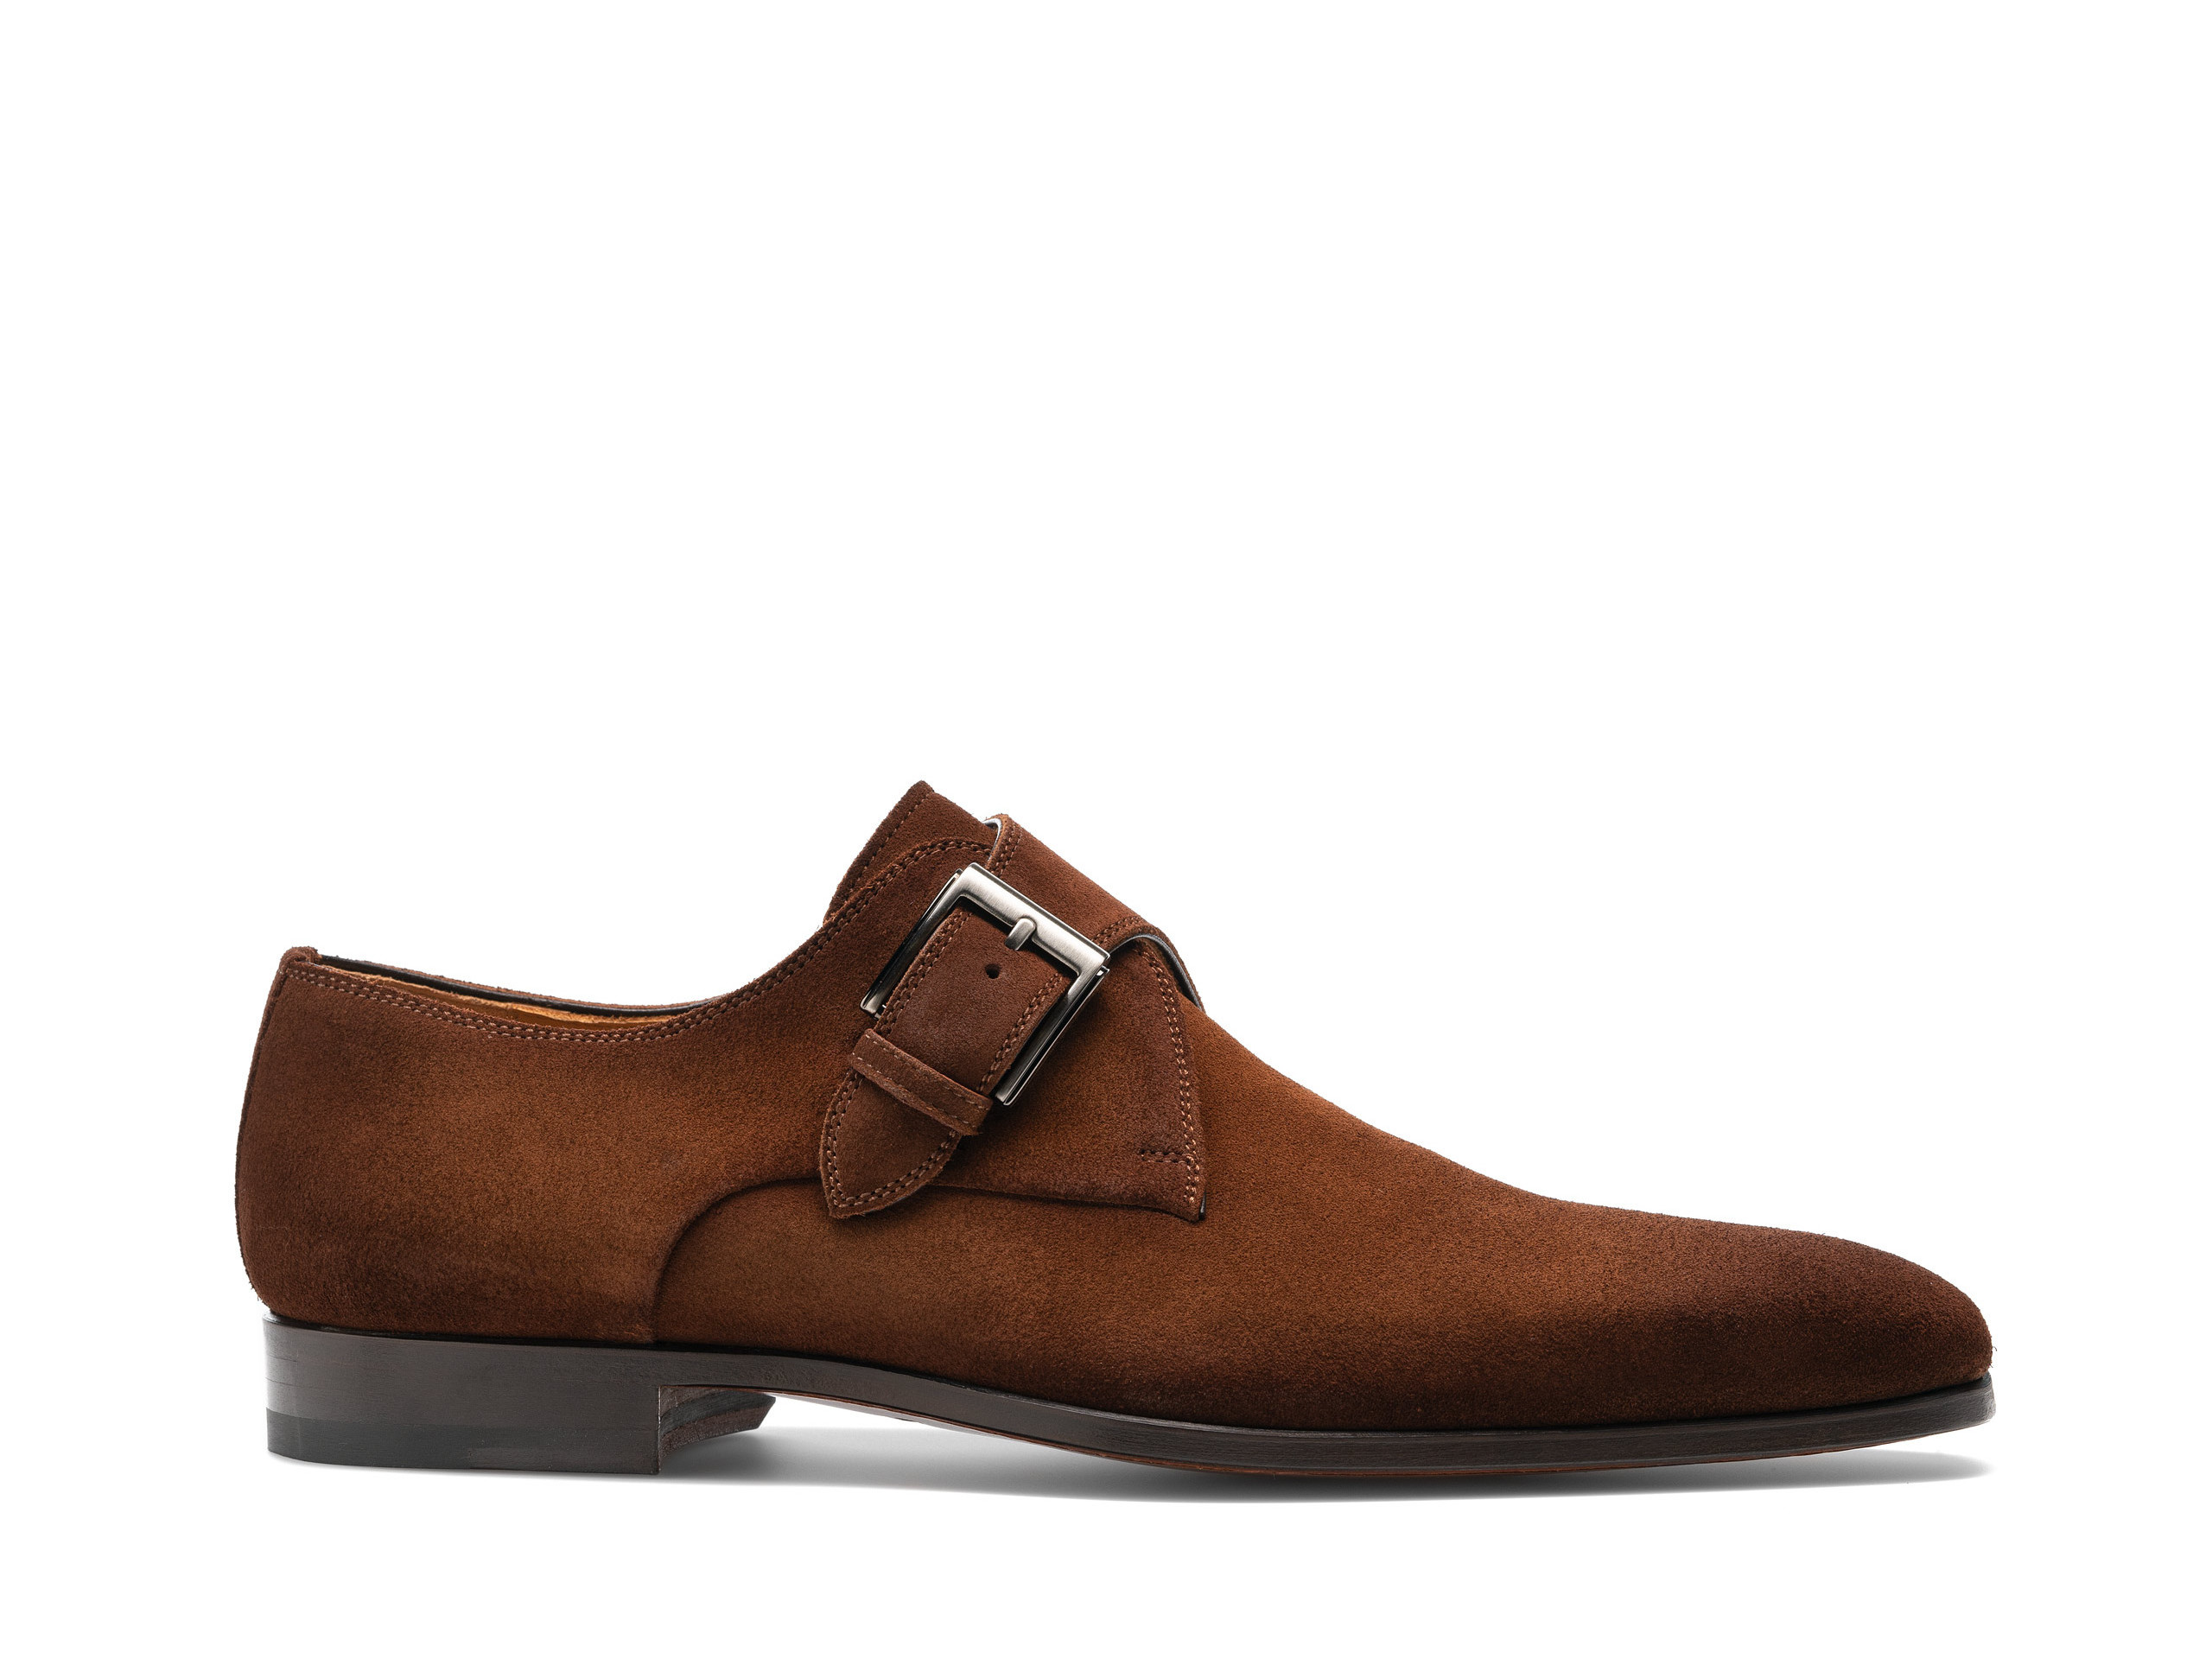 Side view of the Magnanni Cangas II Cognac Suede Men's Single Monk Strap Shoes